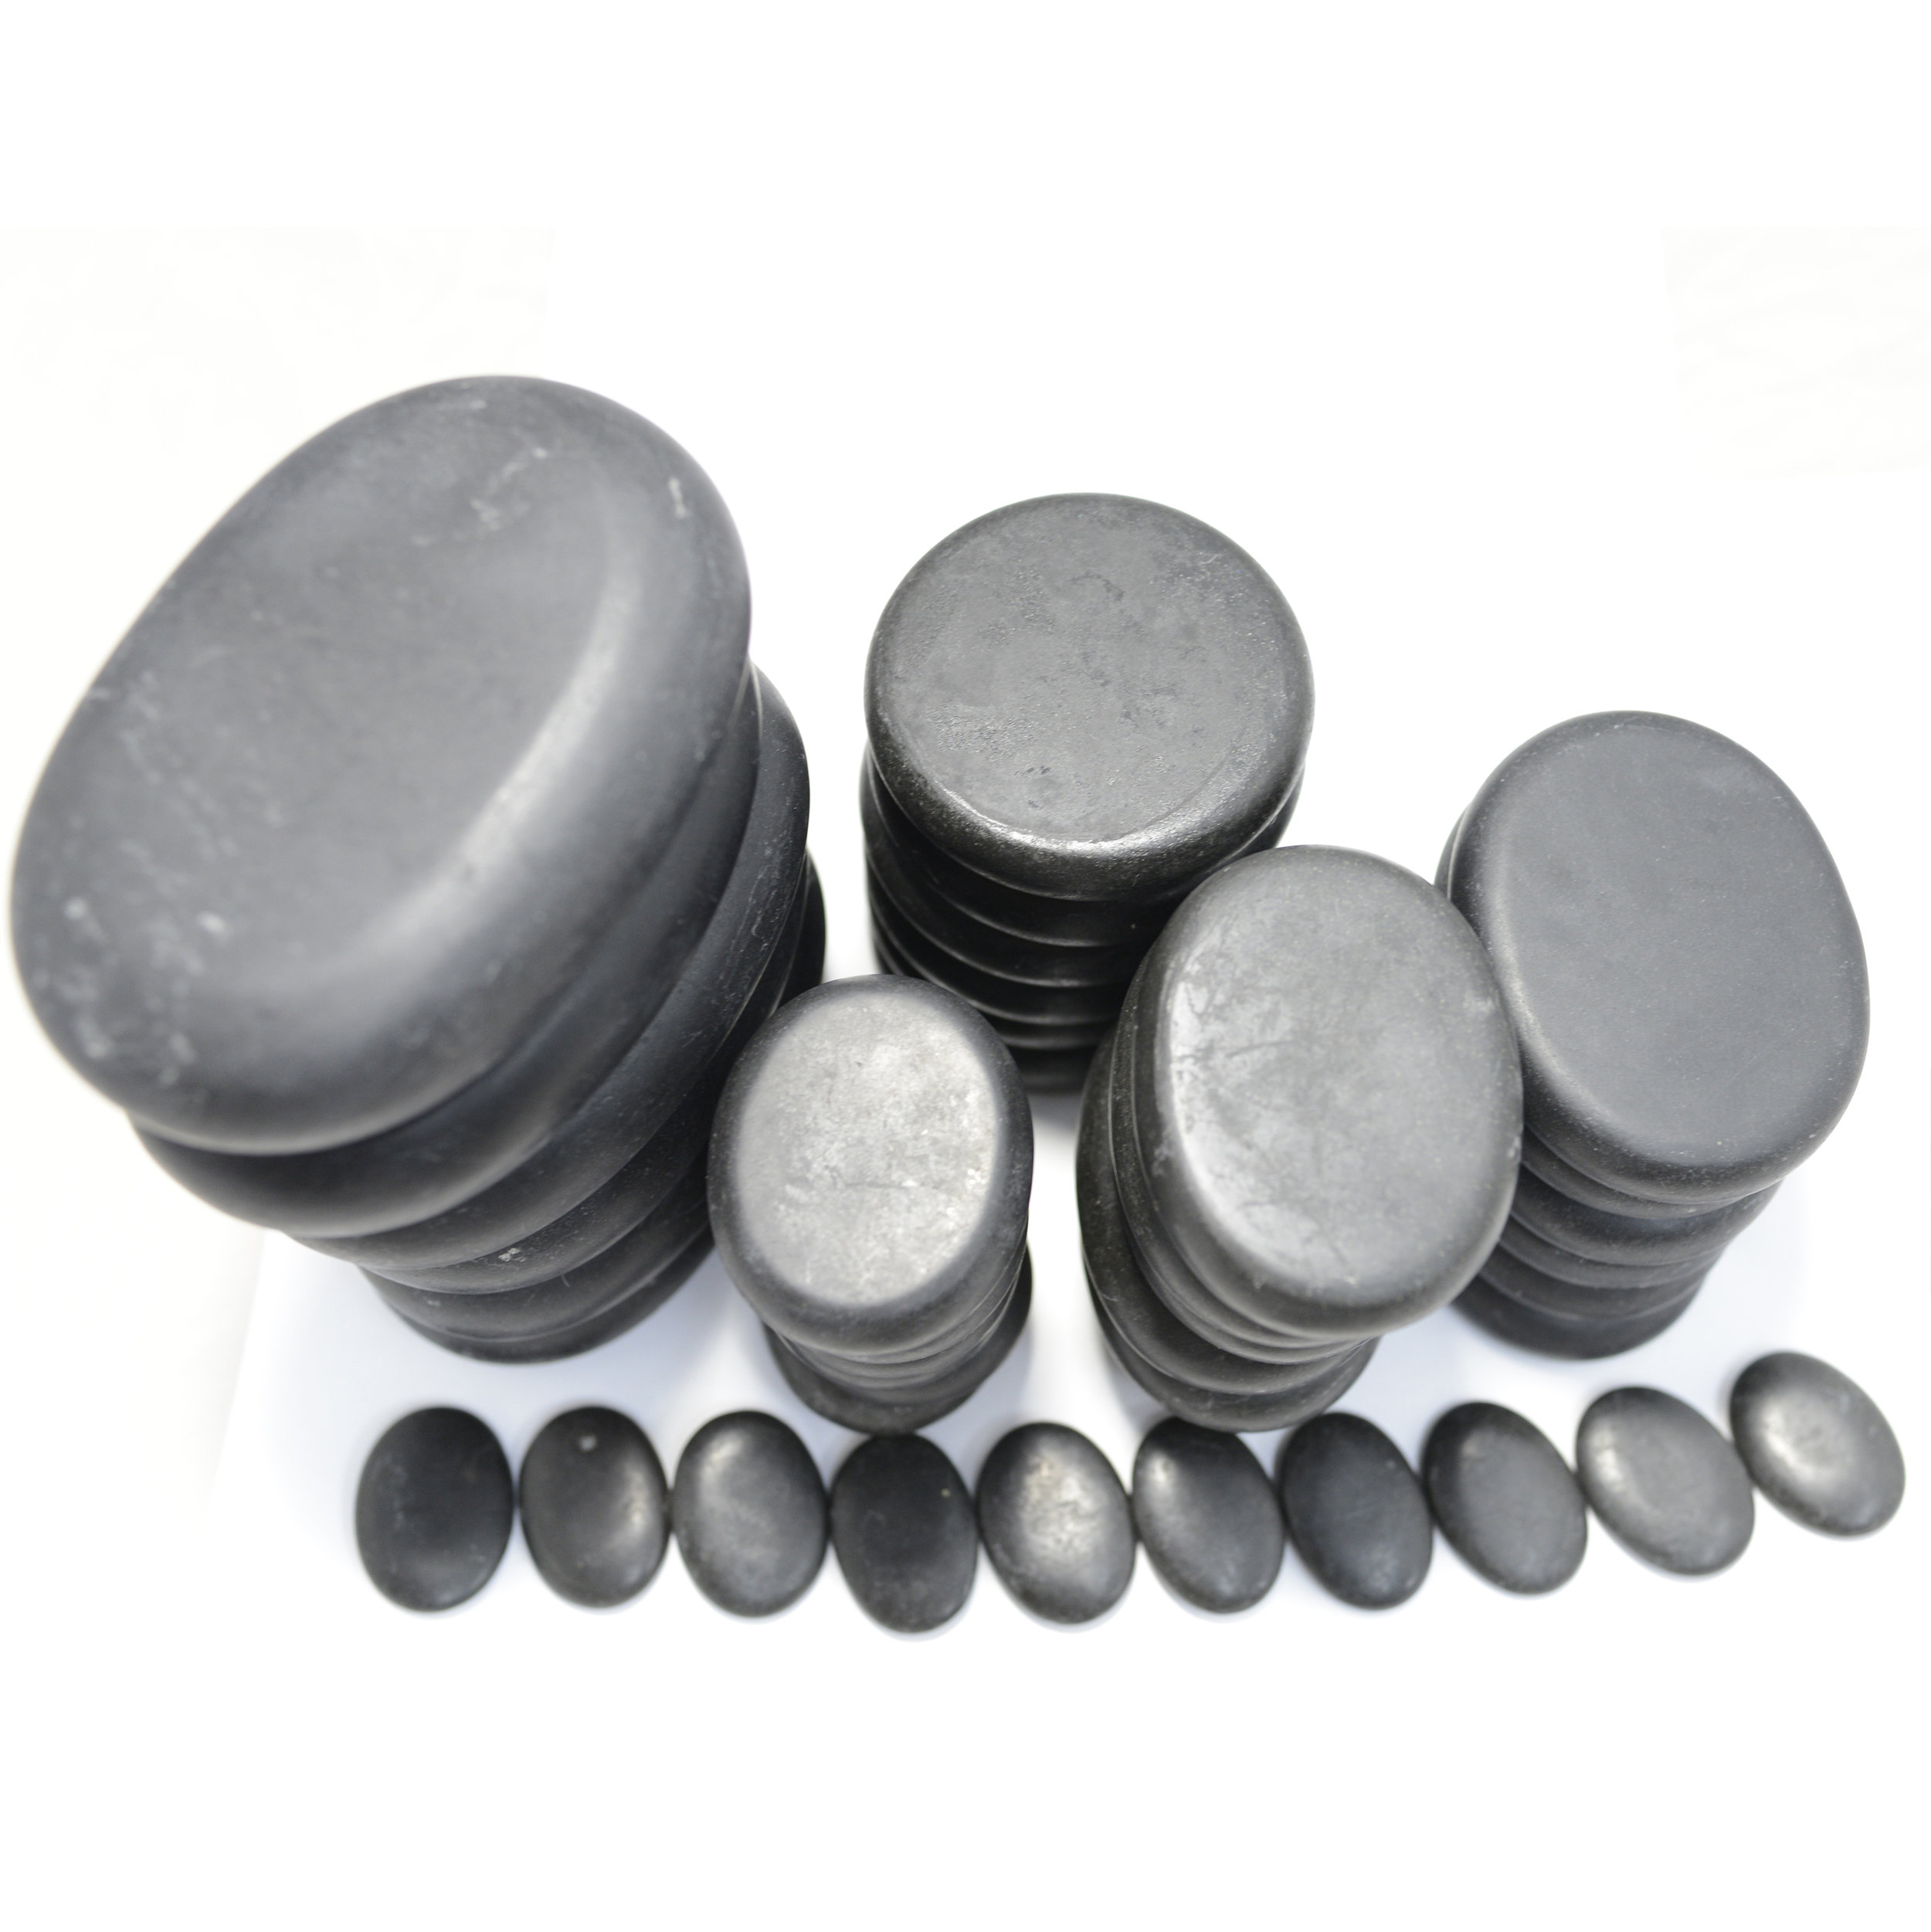 24011 - Massage #Hot Stone 40 pcs./case